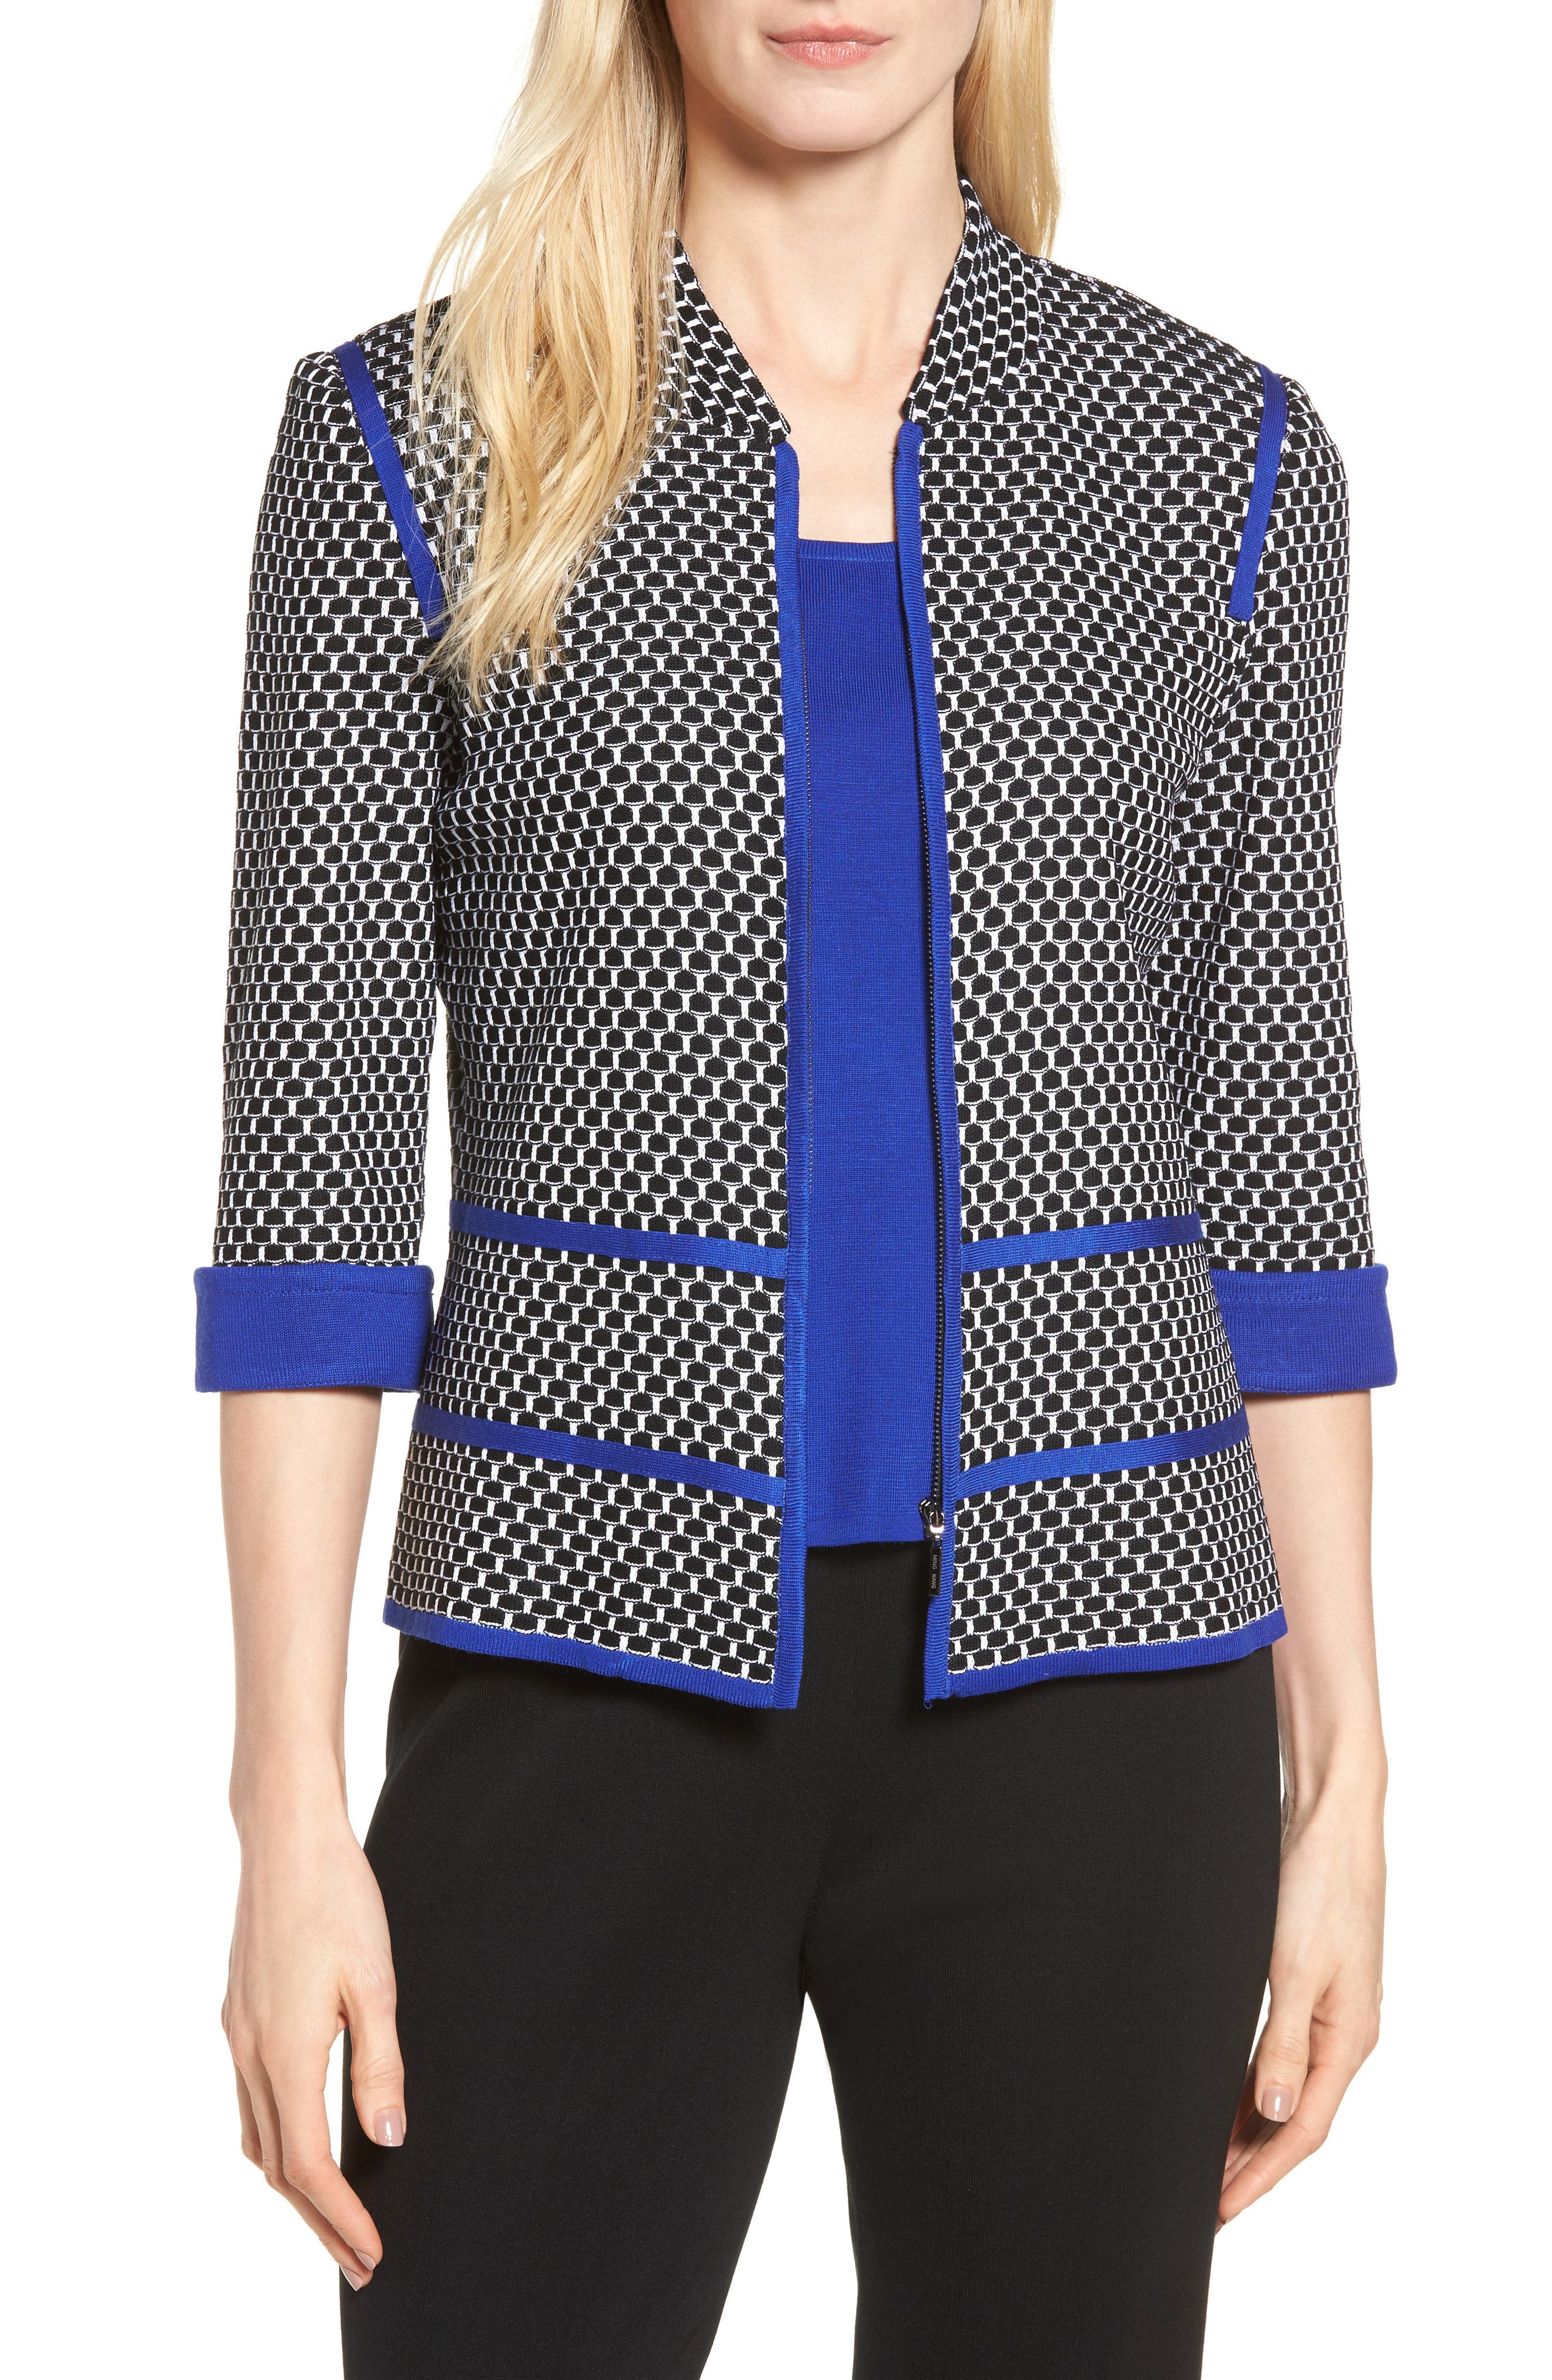 Jacquard Knit Jacket,                         Main,                         color, Black/ Blue Flame/ White